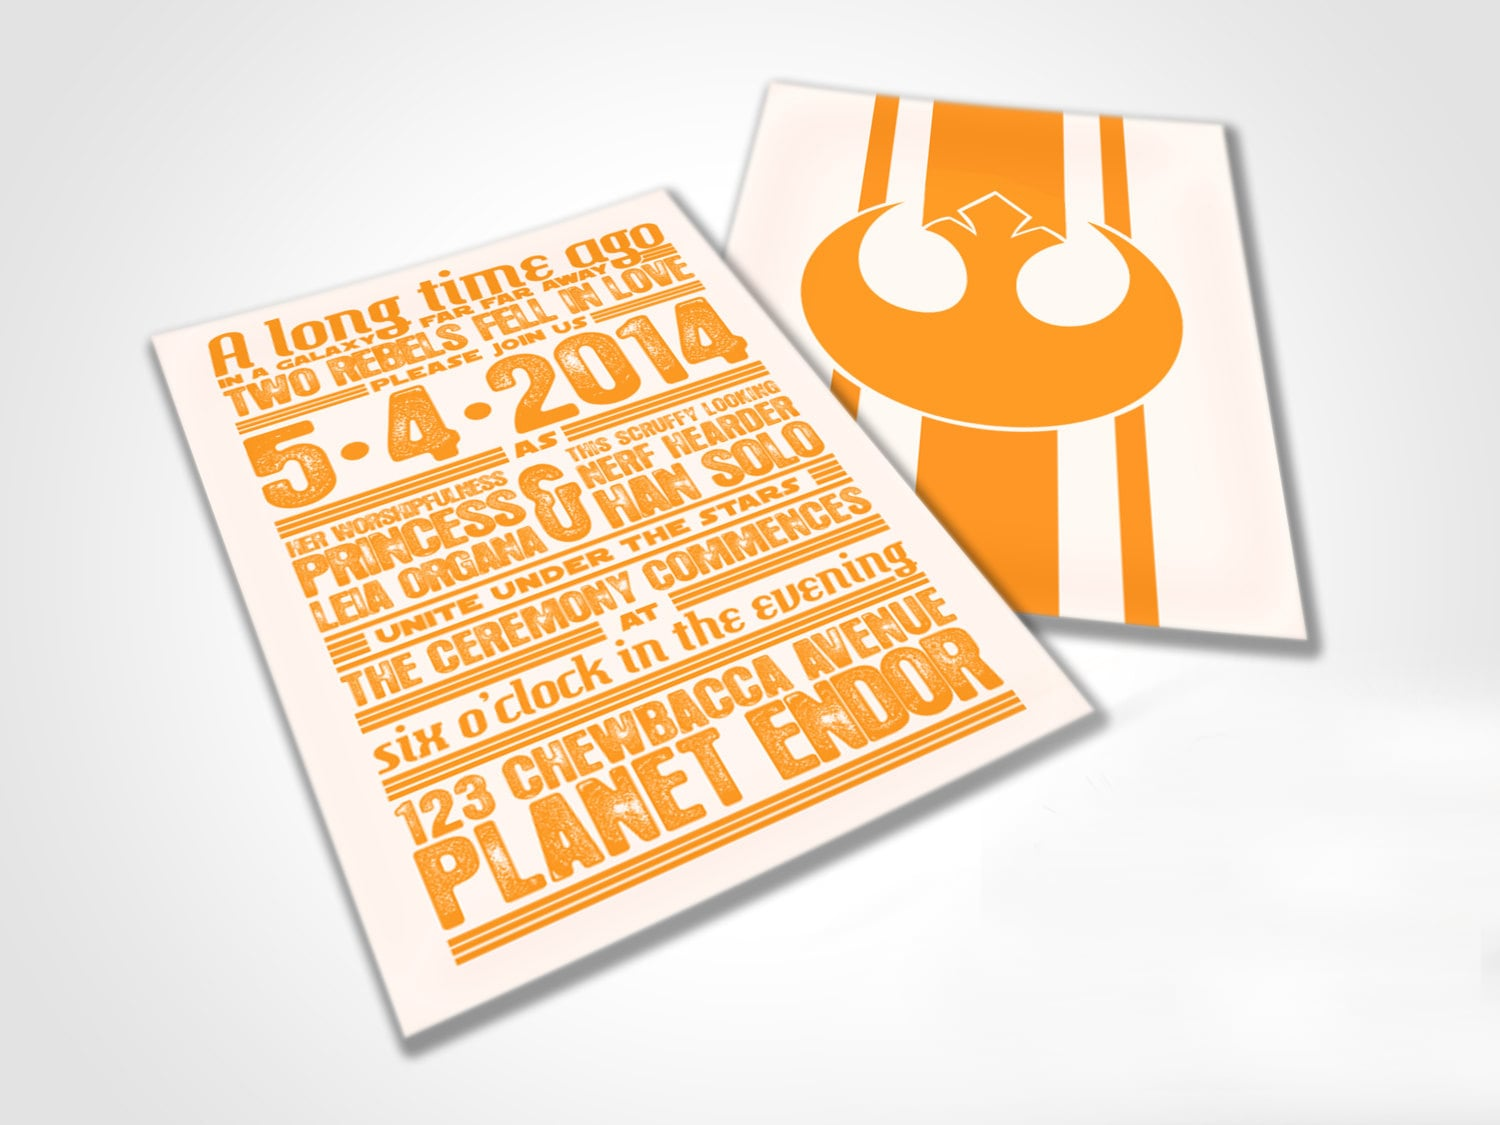 """Star Wars-themed """"rebels in love"""" wedding invites ($50 for digital file)? Done and done."""